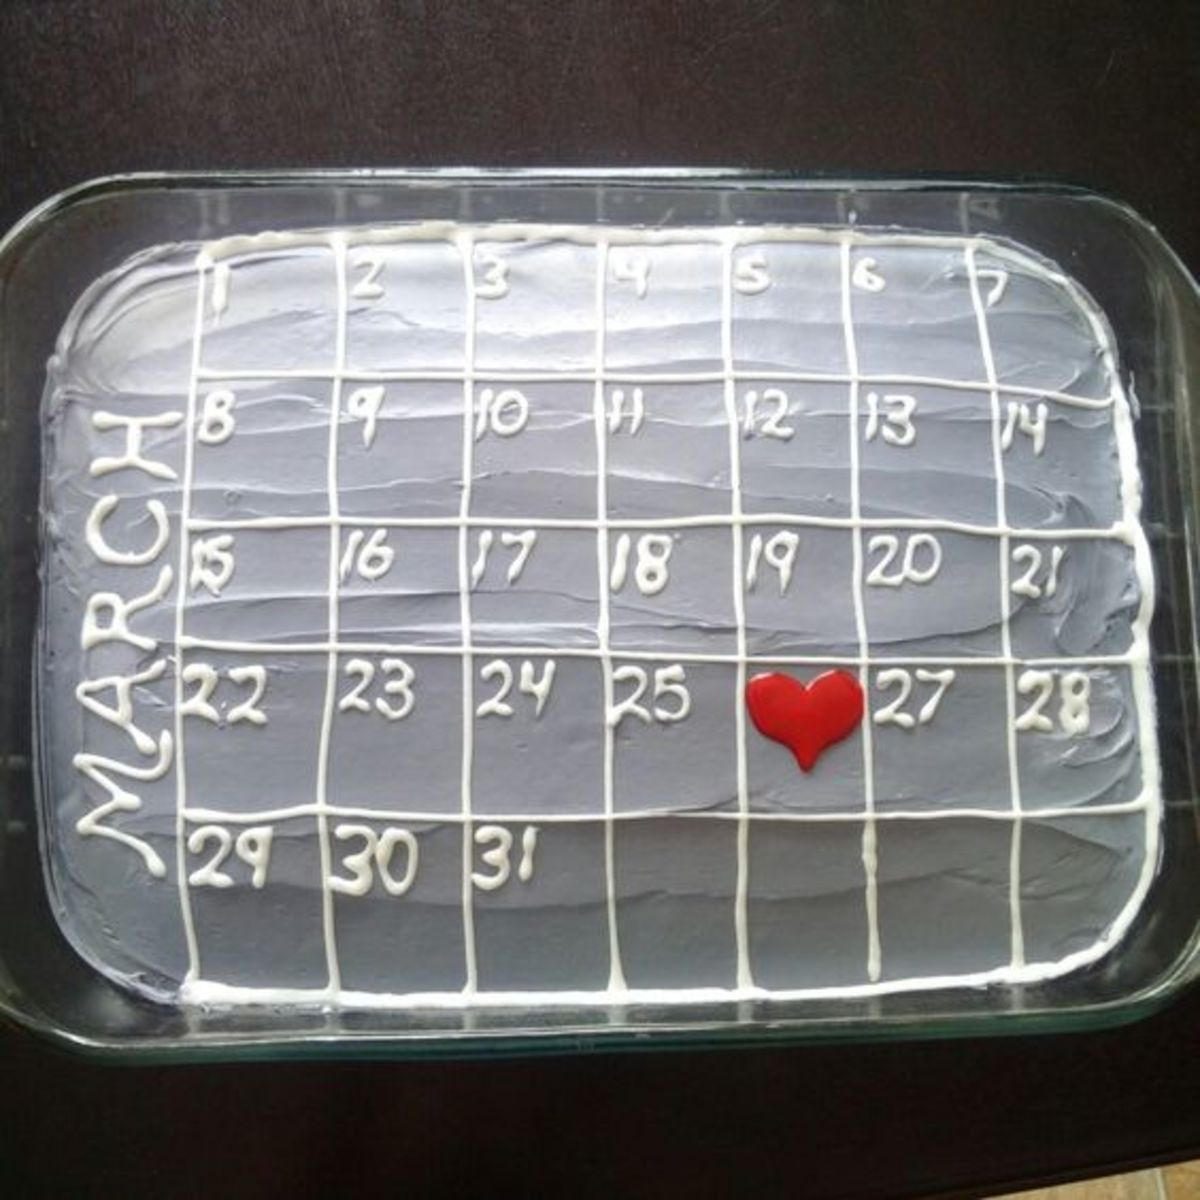 Diy anniversary gifts for him holidappy calendar cake easy diy anniversary gift ideas for him solutioingenieria Image collections